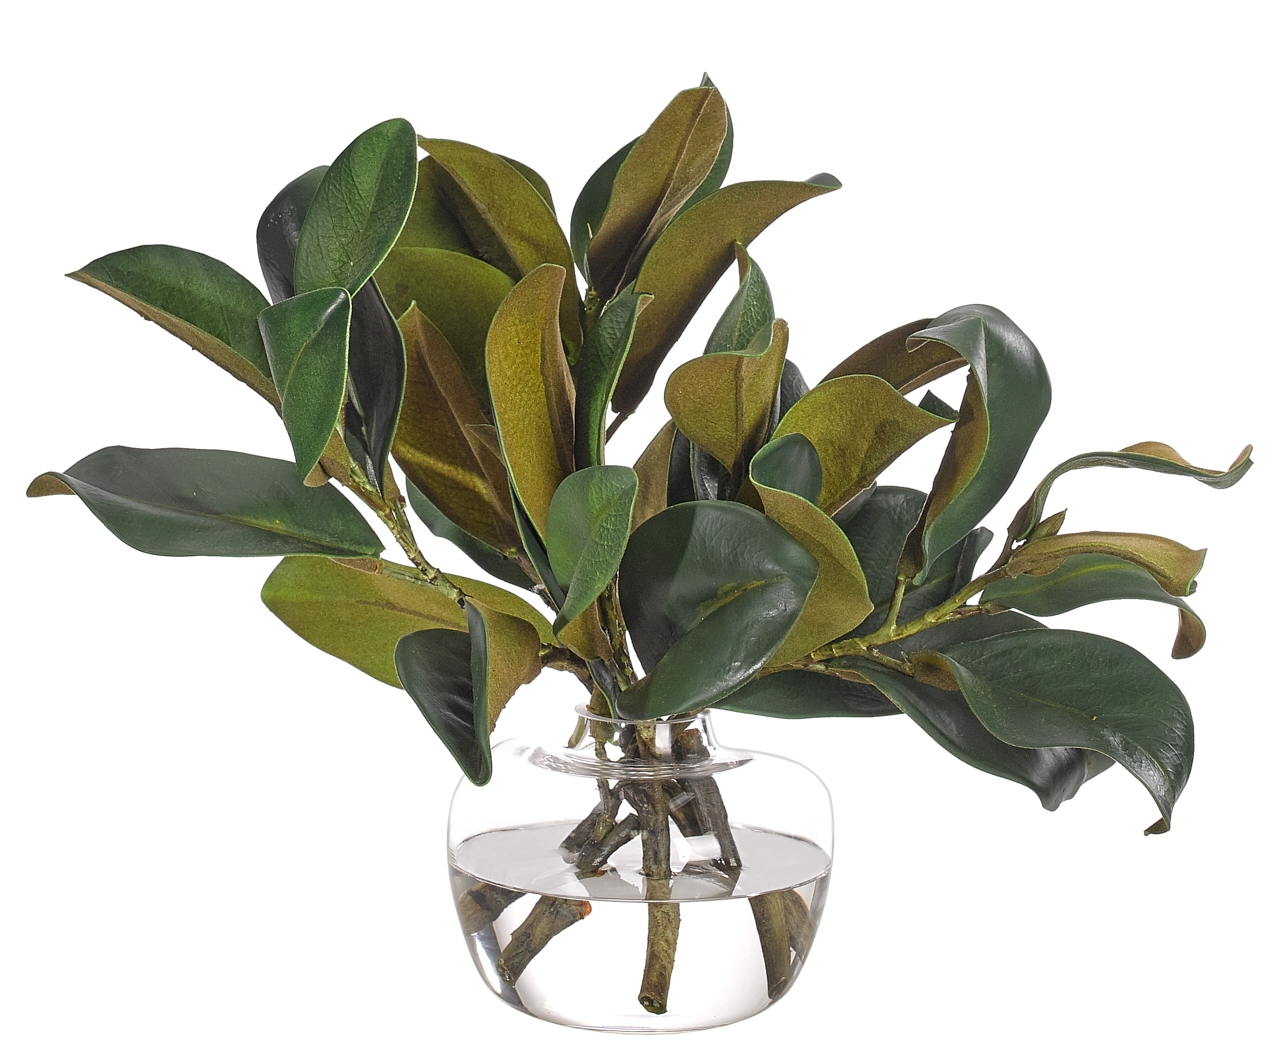 Magnolia Foliage, Glass Ginger Jar, 17wx14dx14h